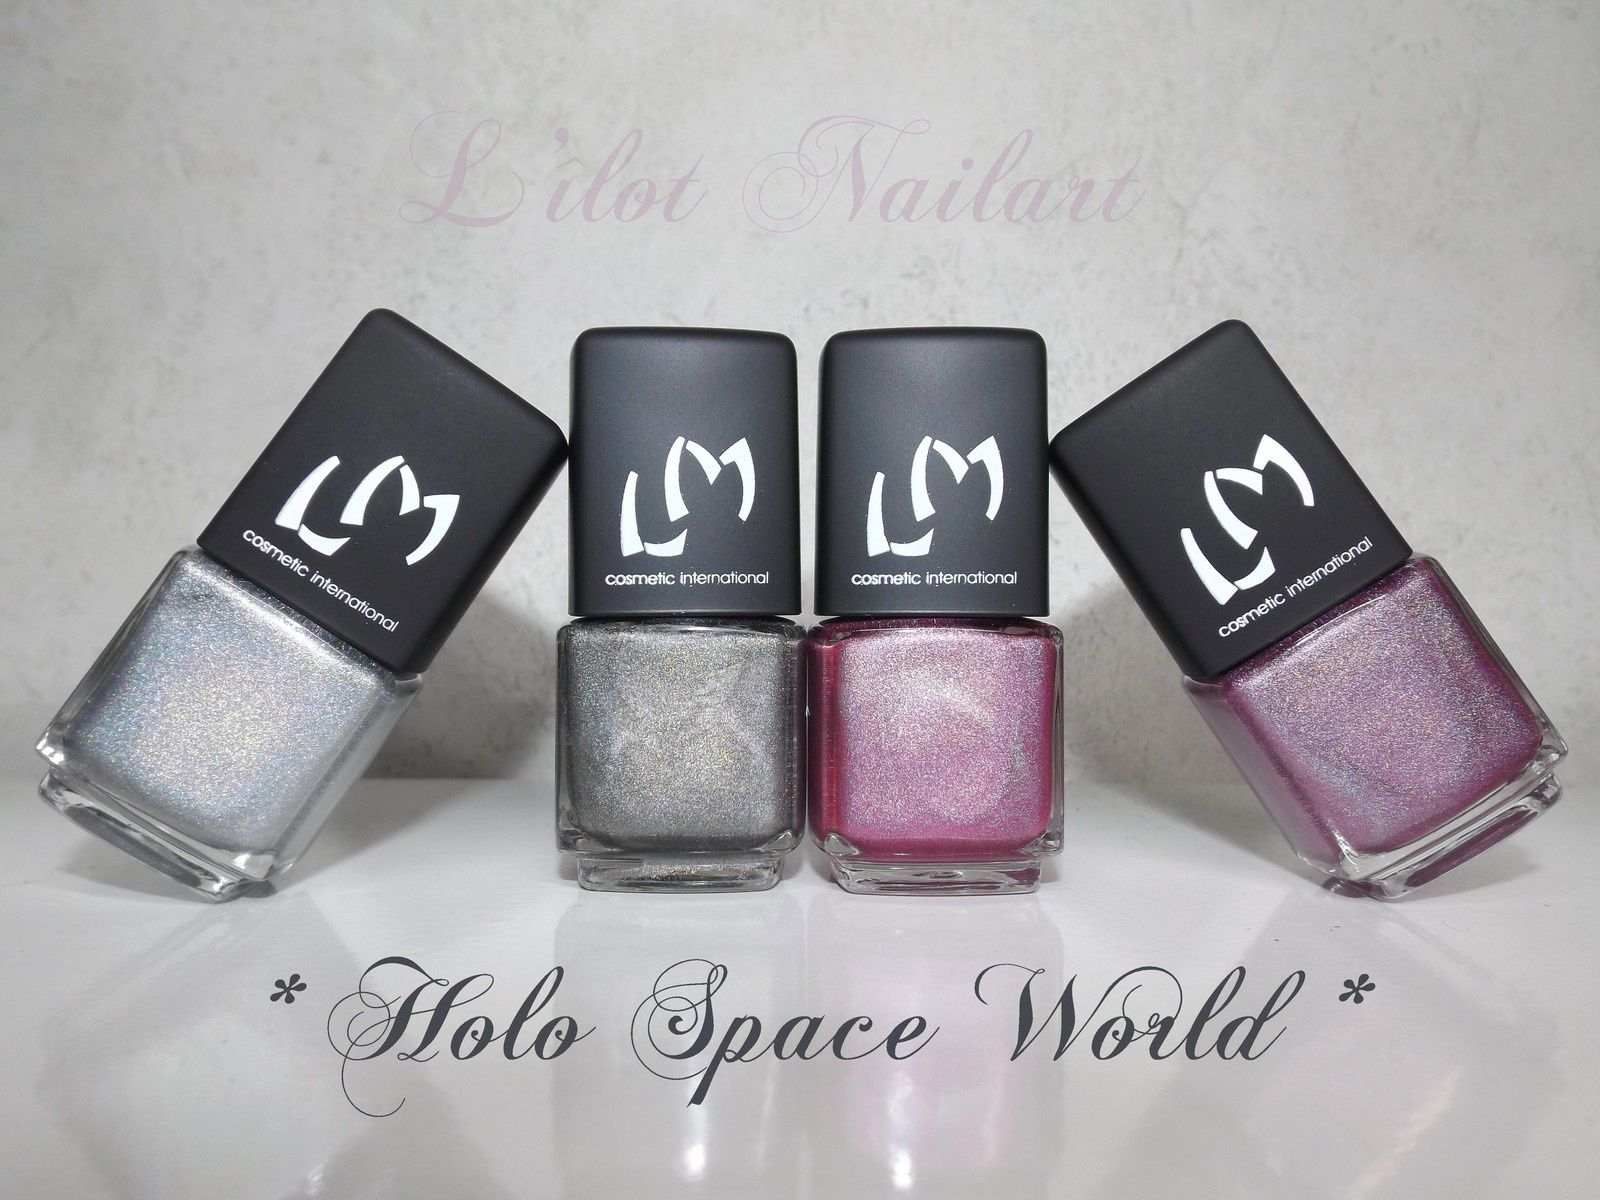 Holo Space World_LM Cosmetic